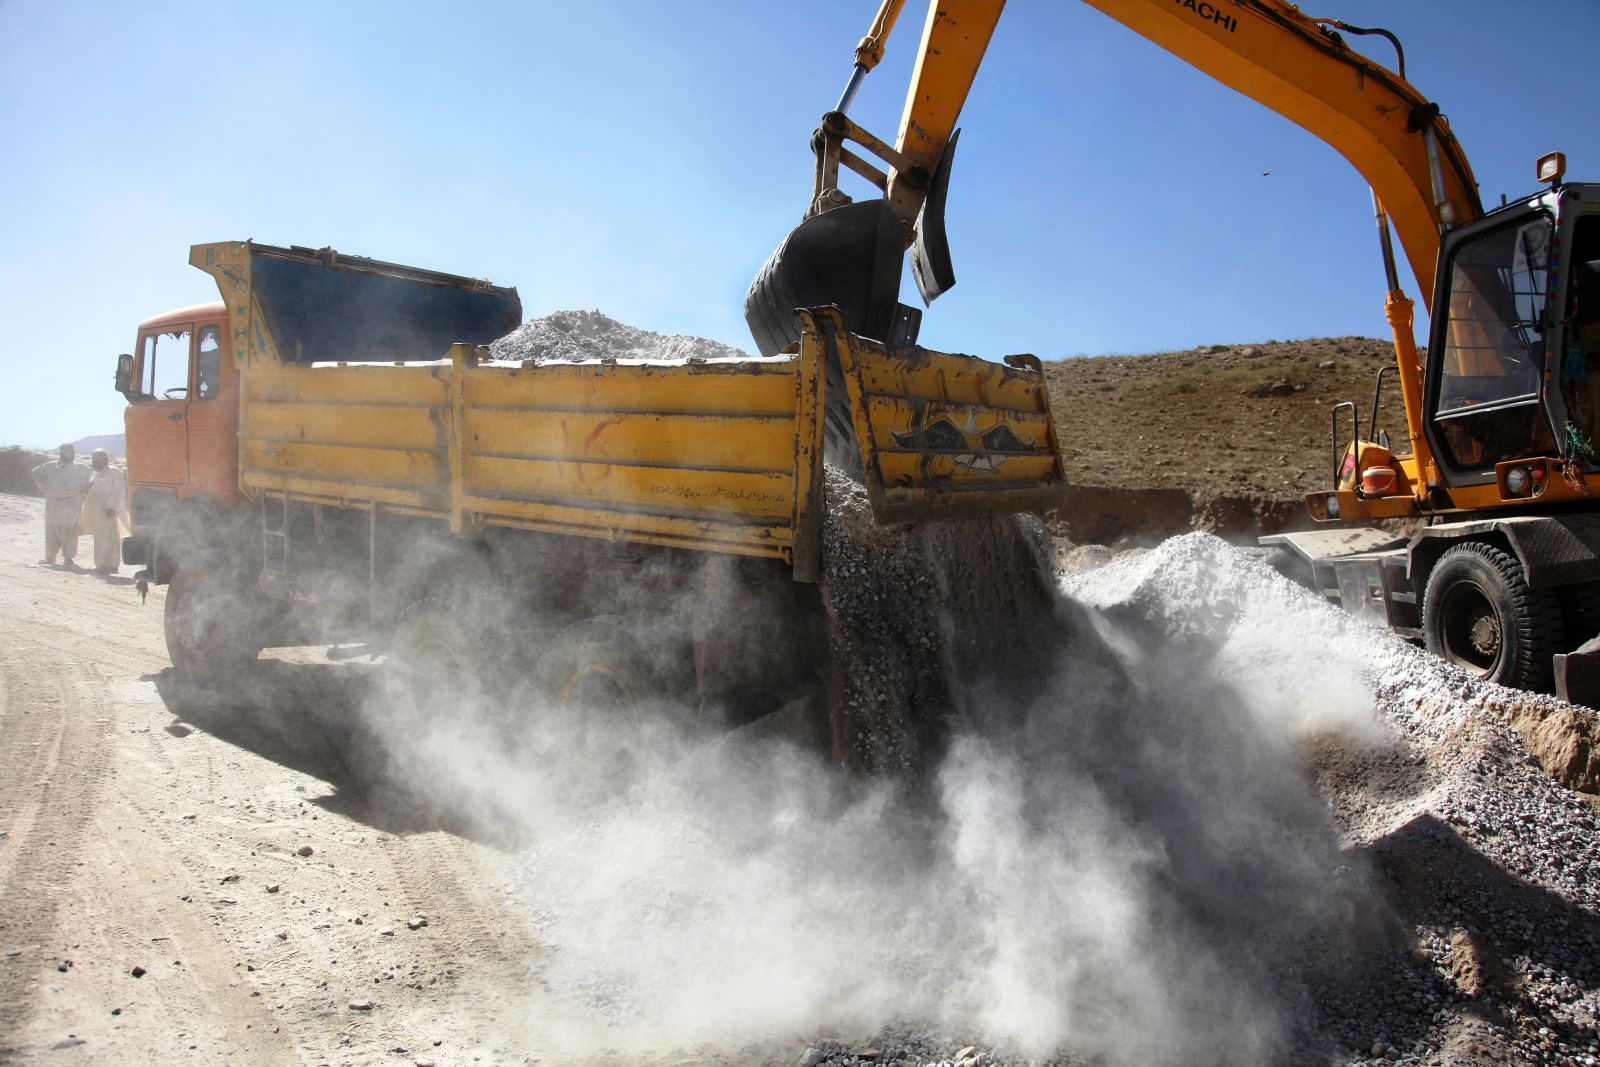 2009_Afghanistan;_Road_construction_works.jpg